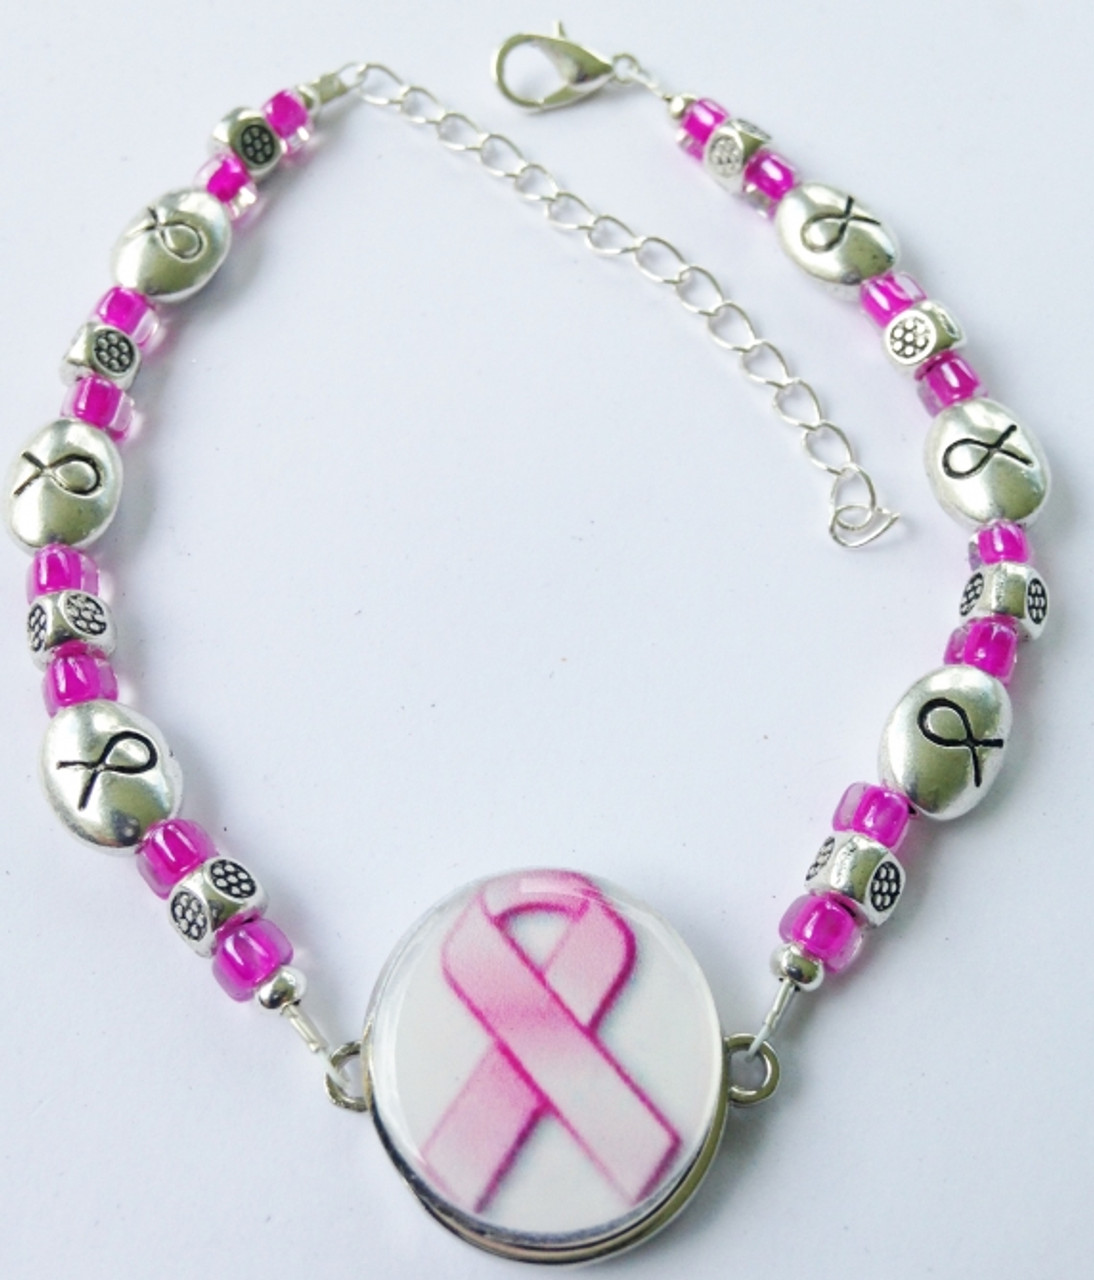 new concept bf284 1a48c One Putt Designs - Breast Cancer Awareness Ribbon Ball Marker Ankle Bracelet